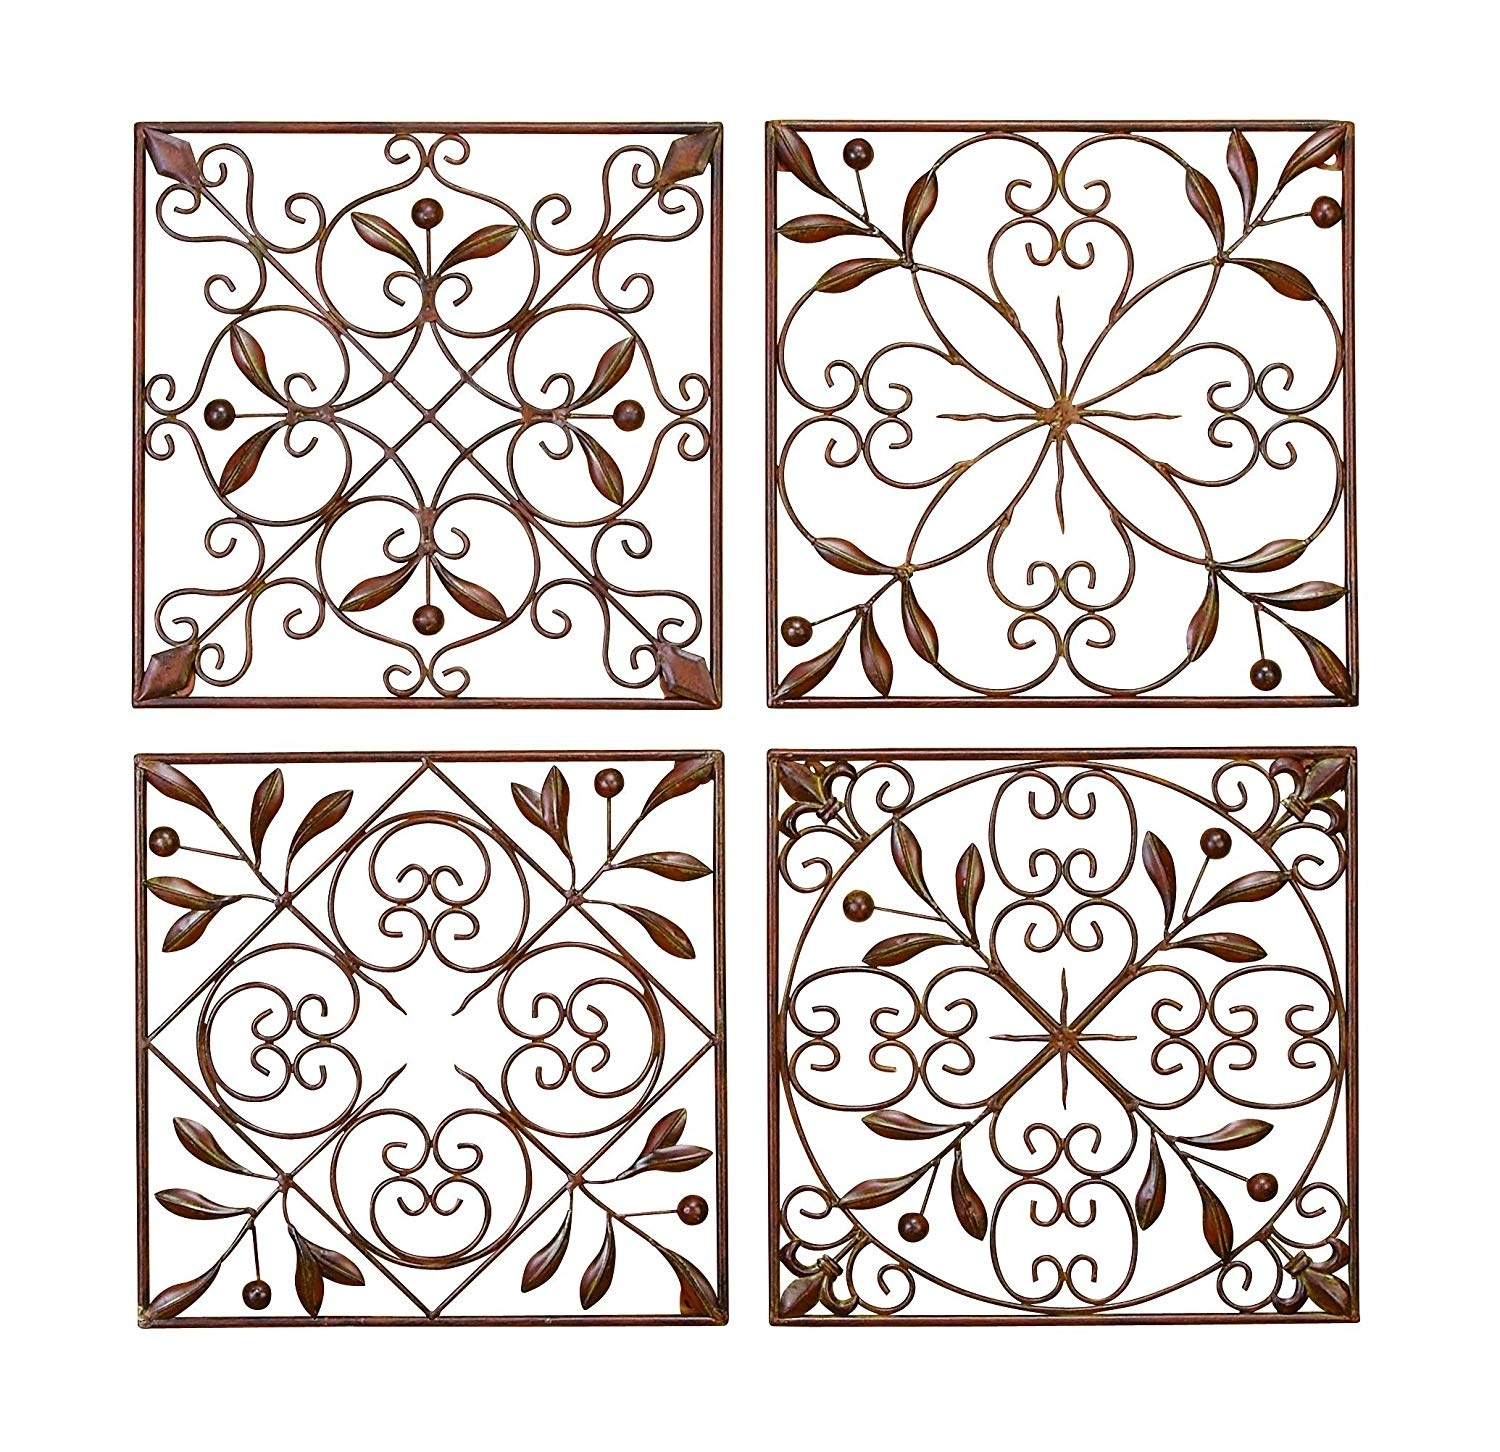 Amazon: Deco 79 50035 Metal Wall Decor Set Of 4: Home & Kitchen in Metal Scroll Wall Art (Image 2 of 20)